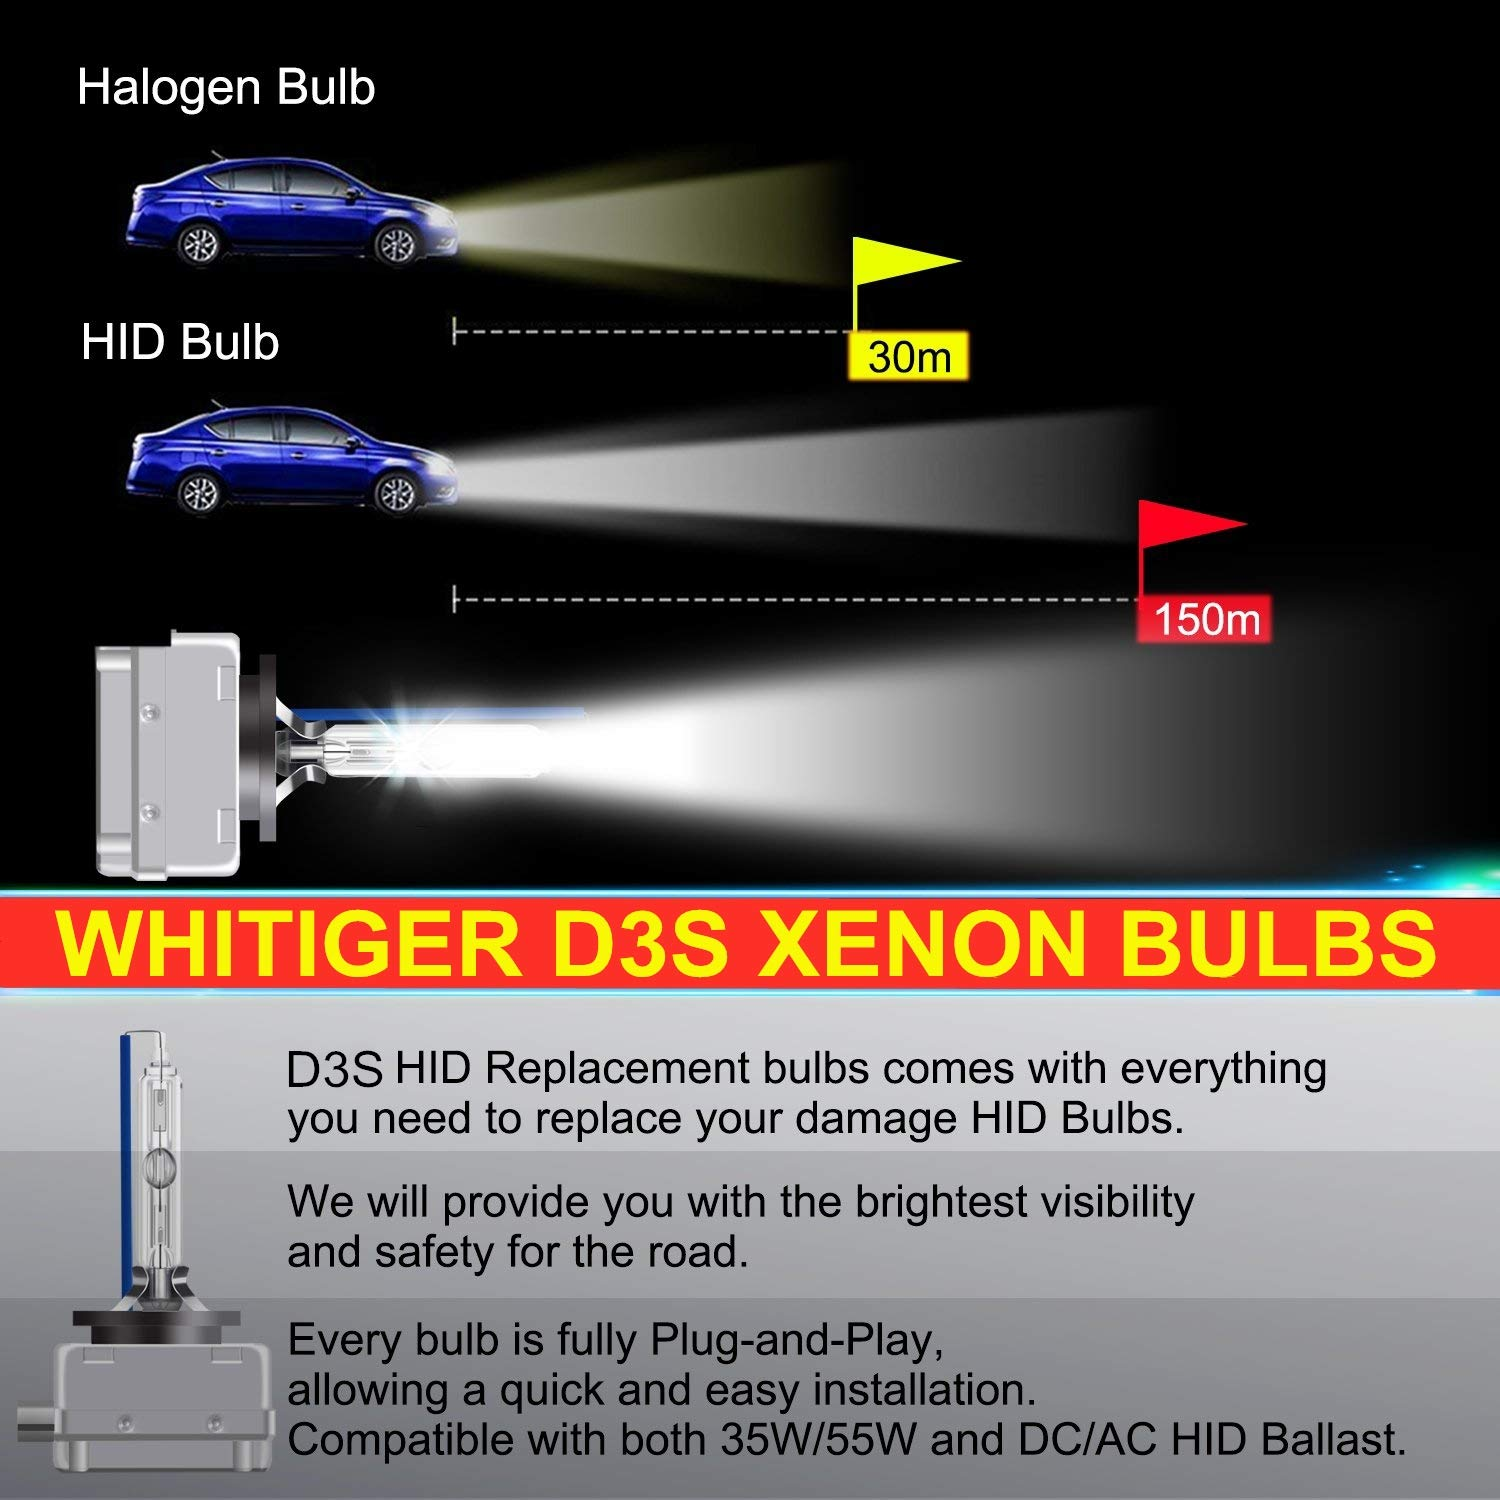 Pack of 2 35W 6000K 12V Diamond White OEM Replace for Halogen or LED Exterior Headlamp Bulbs Whitiger Car HID D4S Xenon Headlight Bulbs